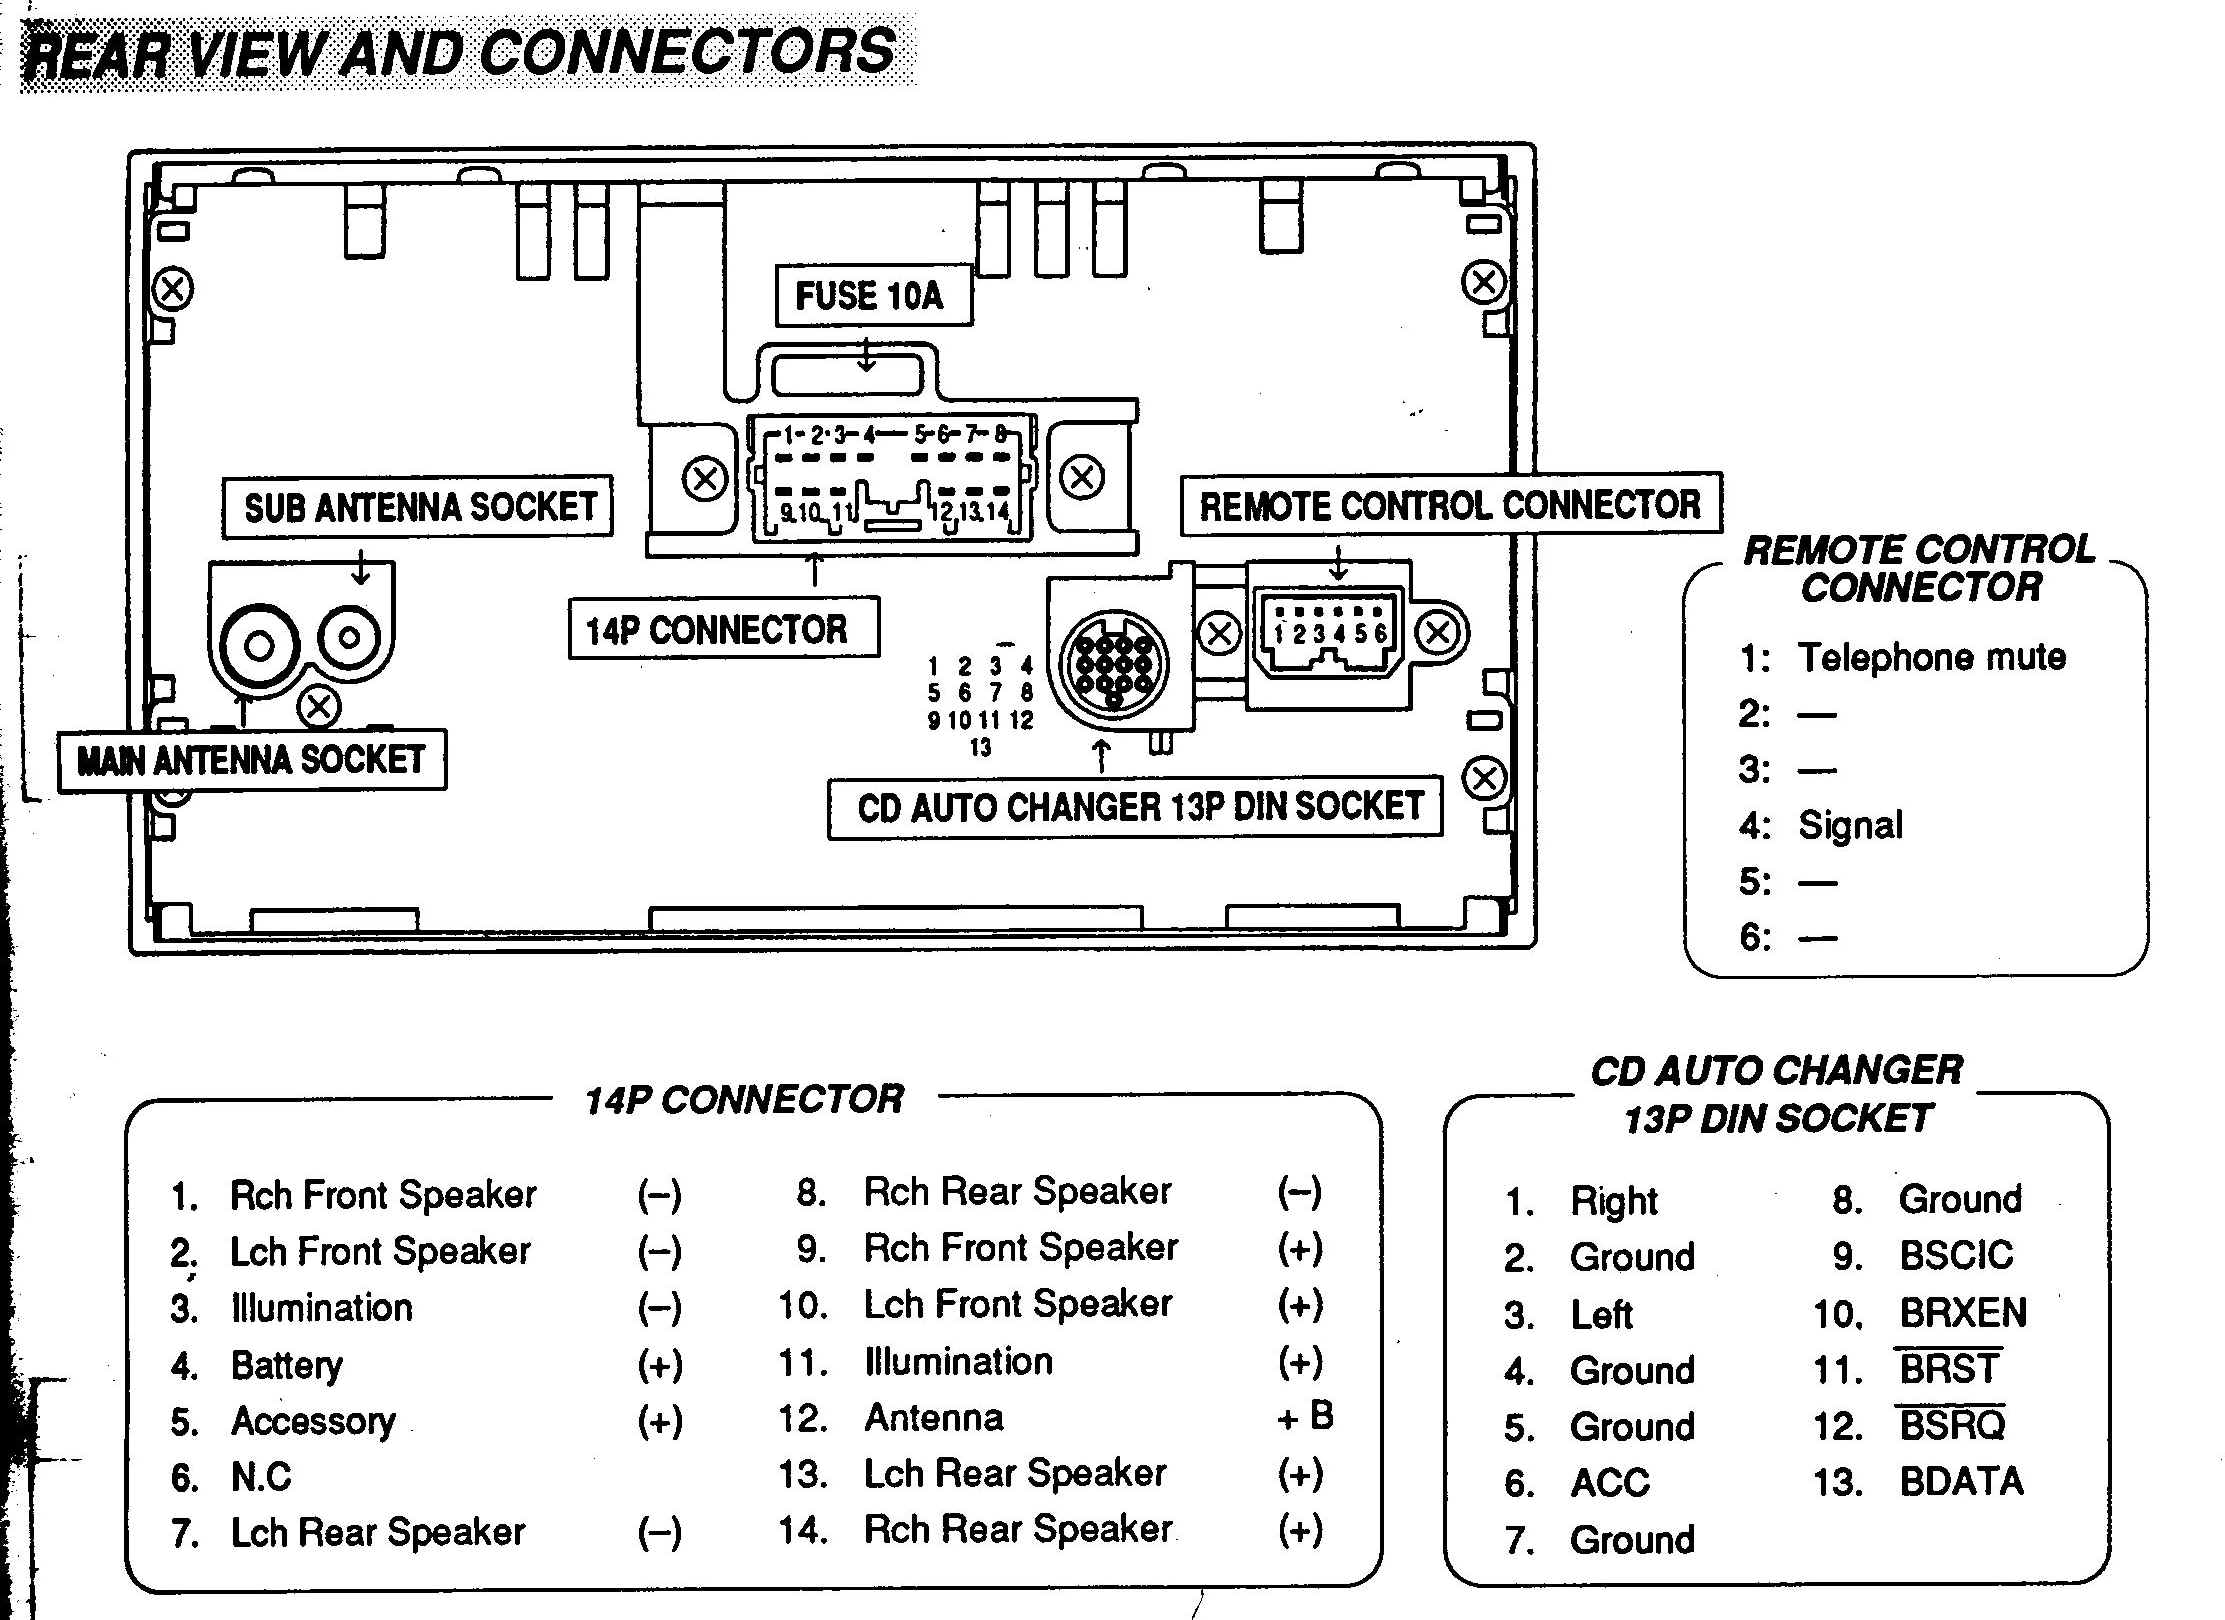 WireHarnessMit121003 amplifier wiring diagram readingrat net 1995 bmw 525i radio wiring diagram at reclaimingppi.co